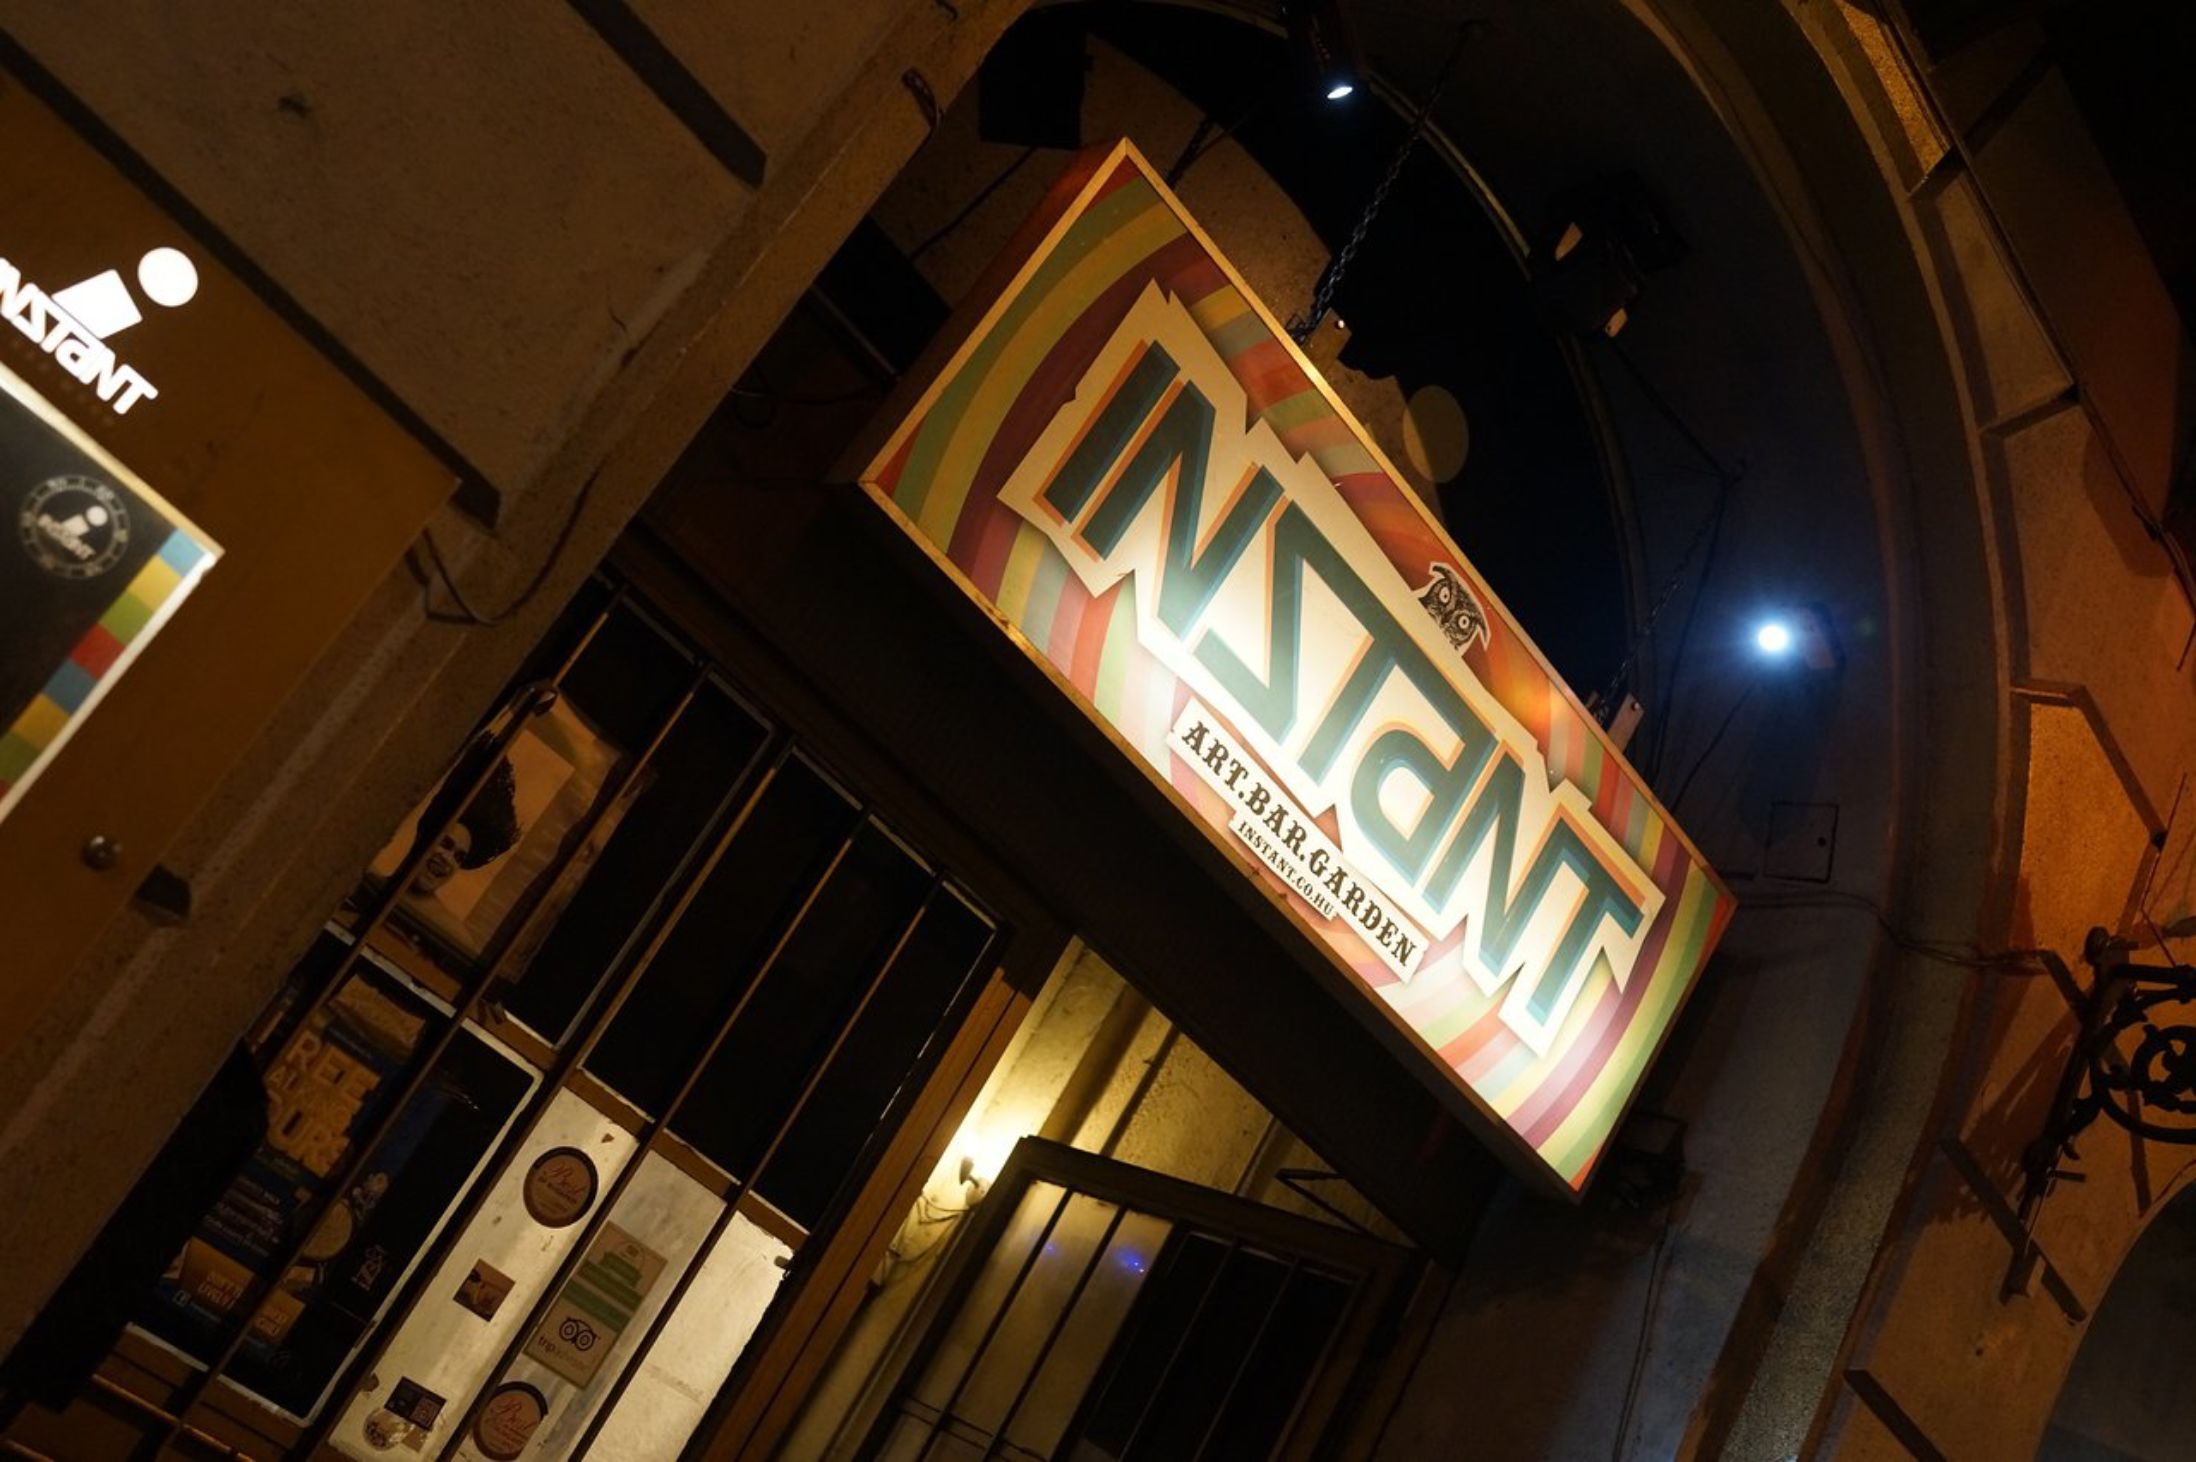 Best Bars in Budapest - Instant and Fogas